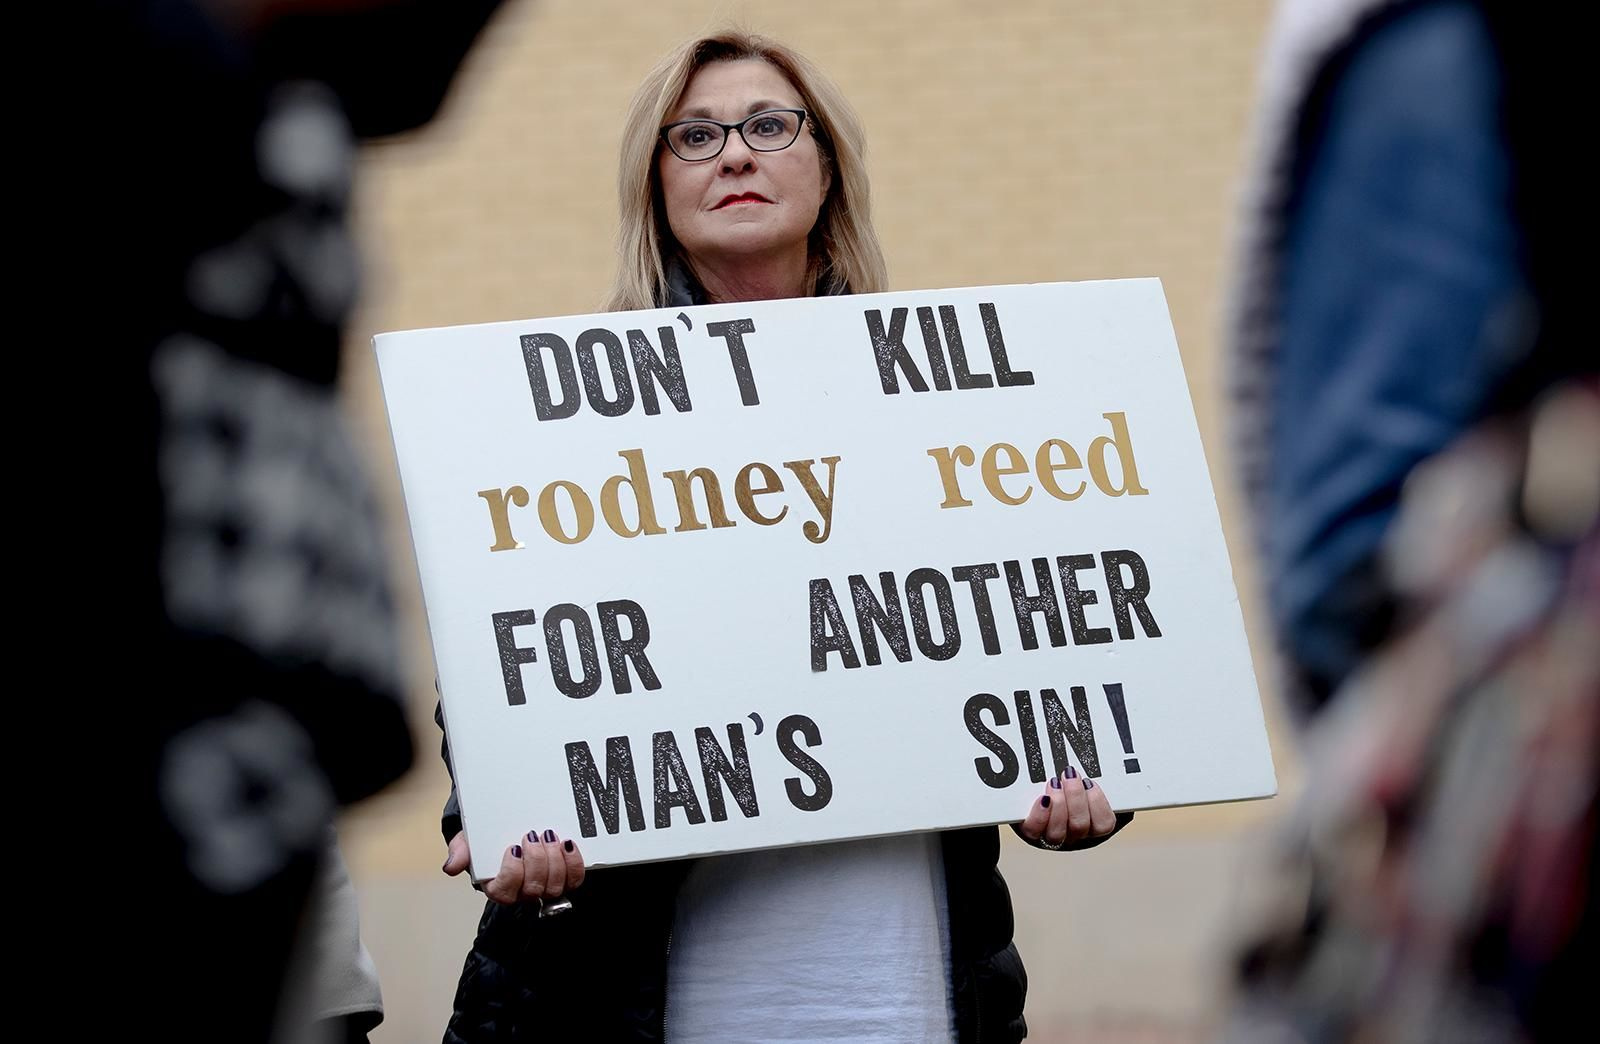 A woman holds a sign during a protest against the execution of Rodney Reed on Wednesday, Nov. 13, 2019, in Bastrop, Texas. Reed is scheduled to be executed Nov. 20, but a growing number of politicians and celebrities have joined calls to further examine Reed's case before his execution proceeds. (Nick Wagner/Austin American-Statesman via AP)